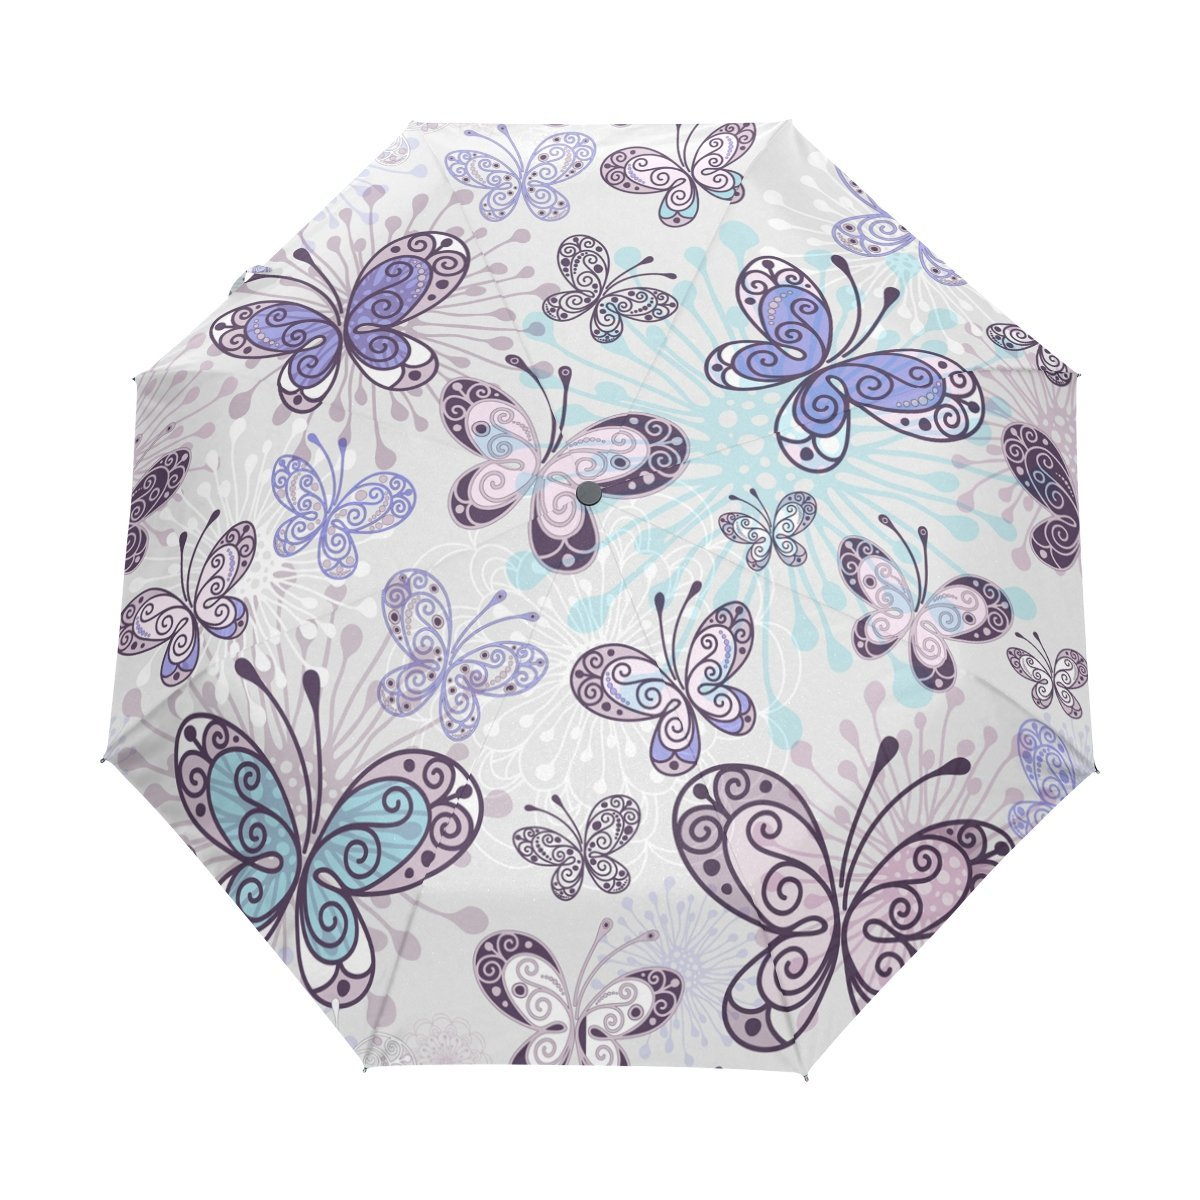 700fba9d5a2d Cheap Stylish Umbrellas, find Stylish Umbrellas deals on line at ...